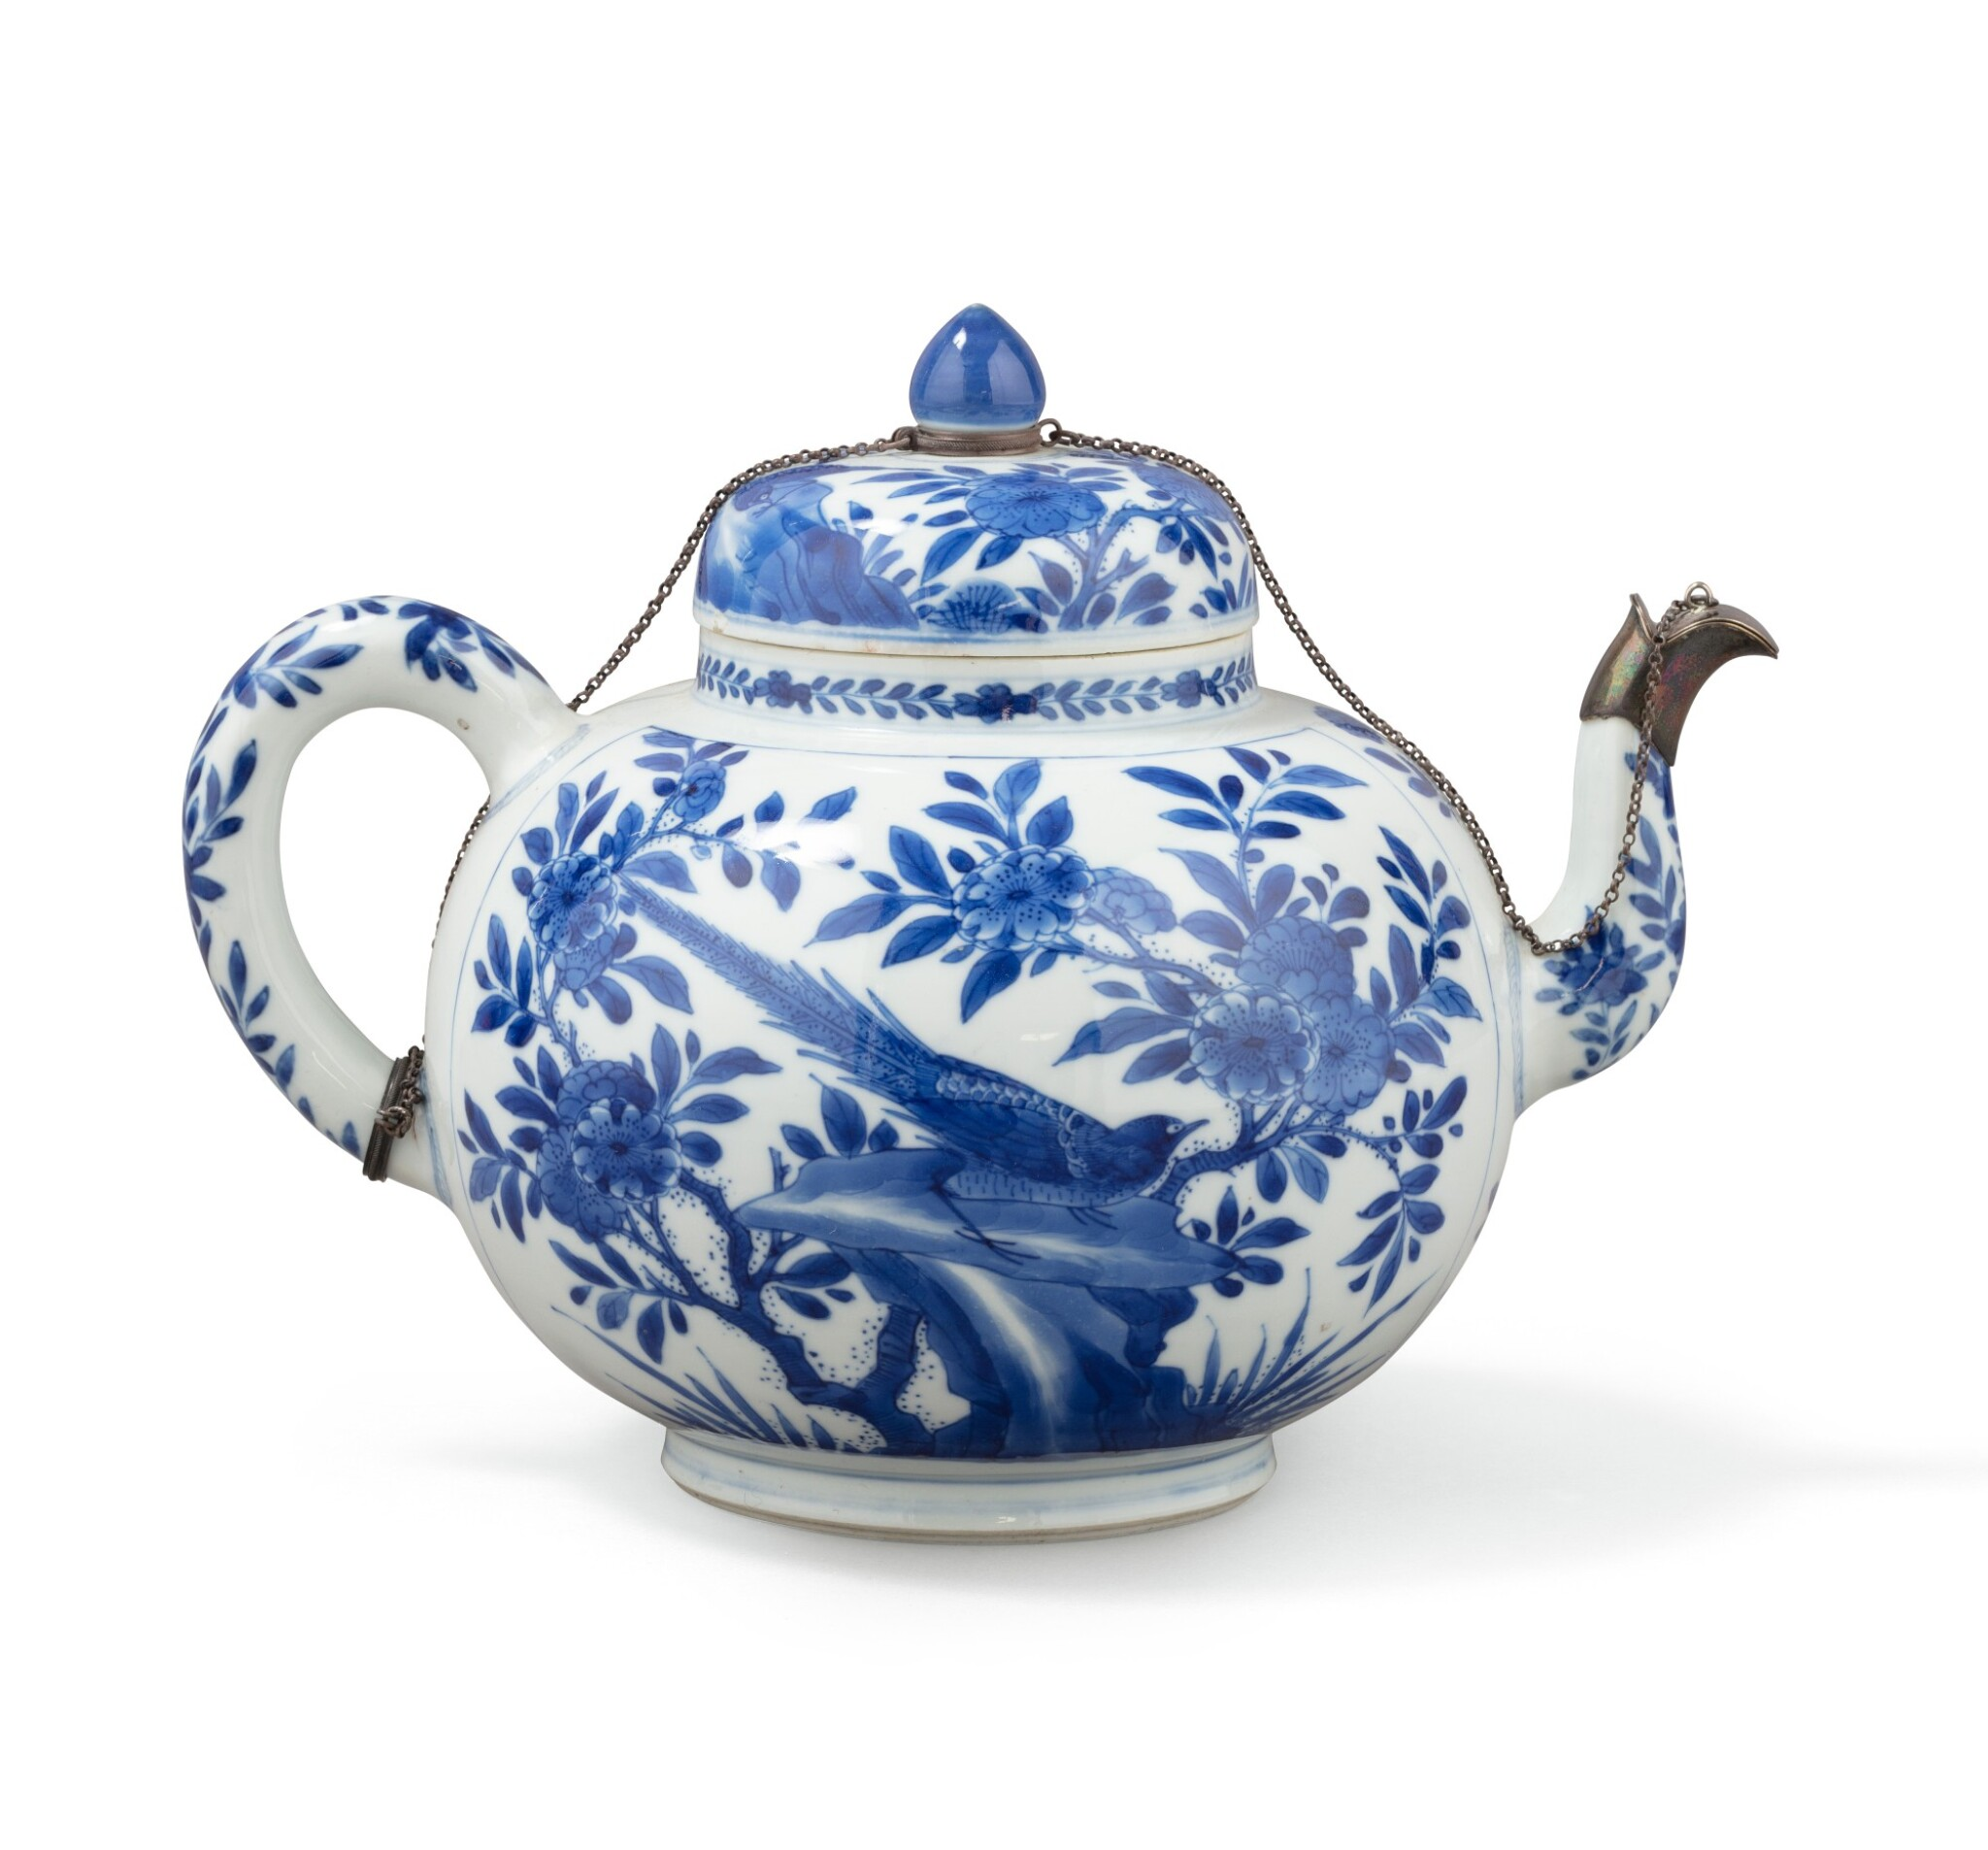 View full screen - View 1 of Lot 283. A blue and white teapot and jar, China, Qing Dynasty, 18th-19th century.